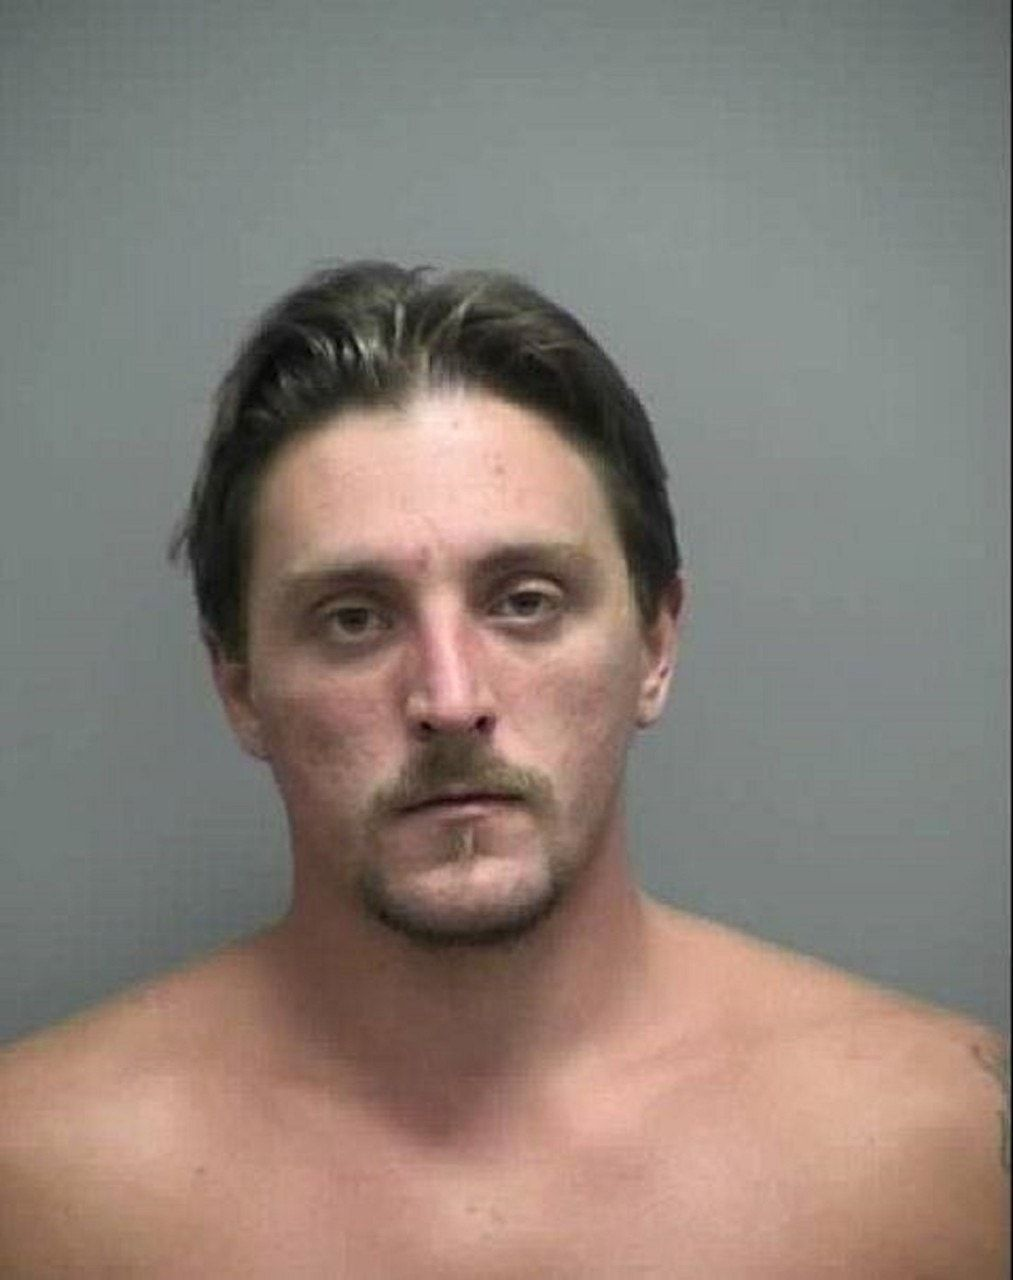 Joseph Jakubowski, Wisconsin man who sent manifesto to Trump, claims he 'doesn't know' where stolen guns are